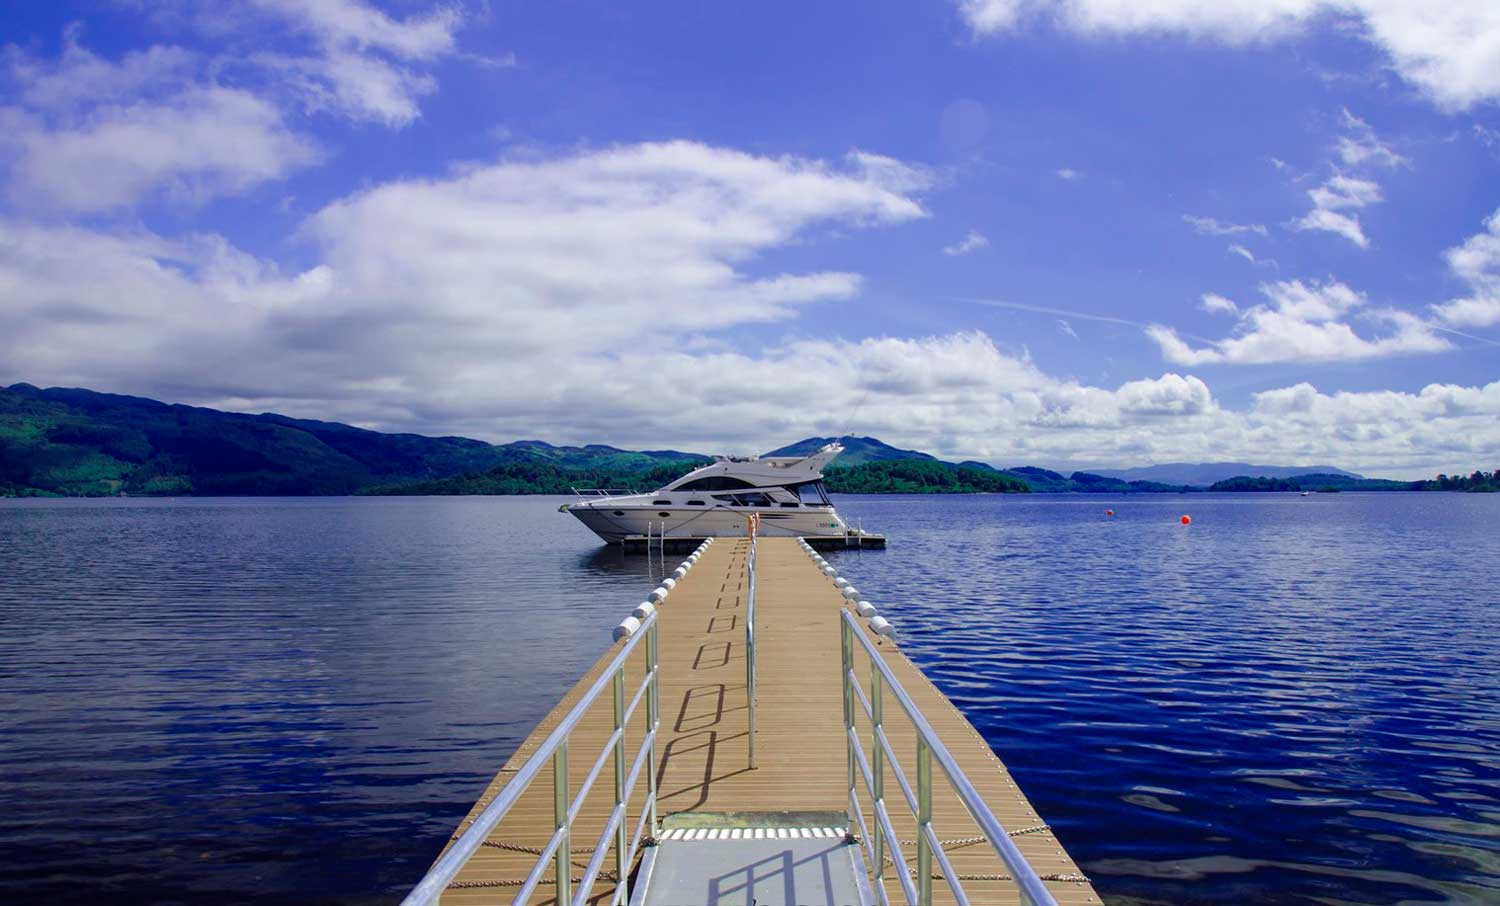 Loch Lomond Jetty at Lodge on Loch Lomond